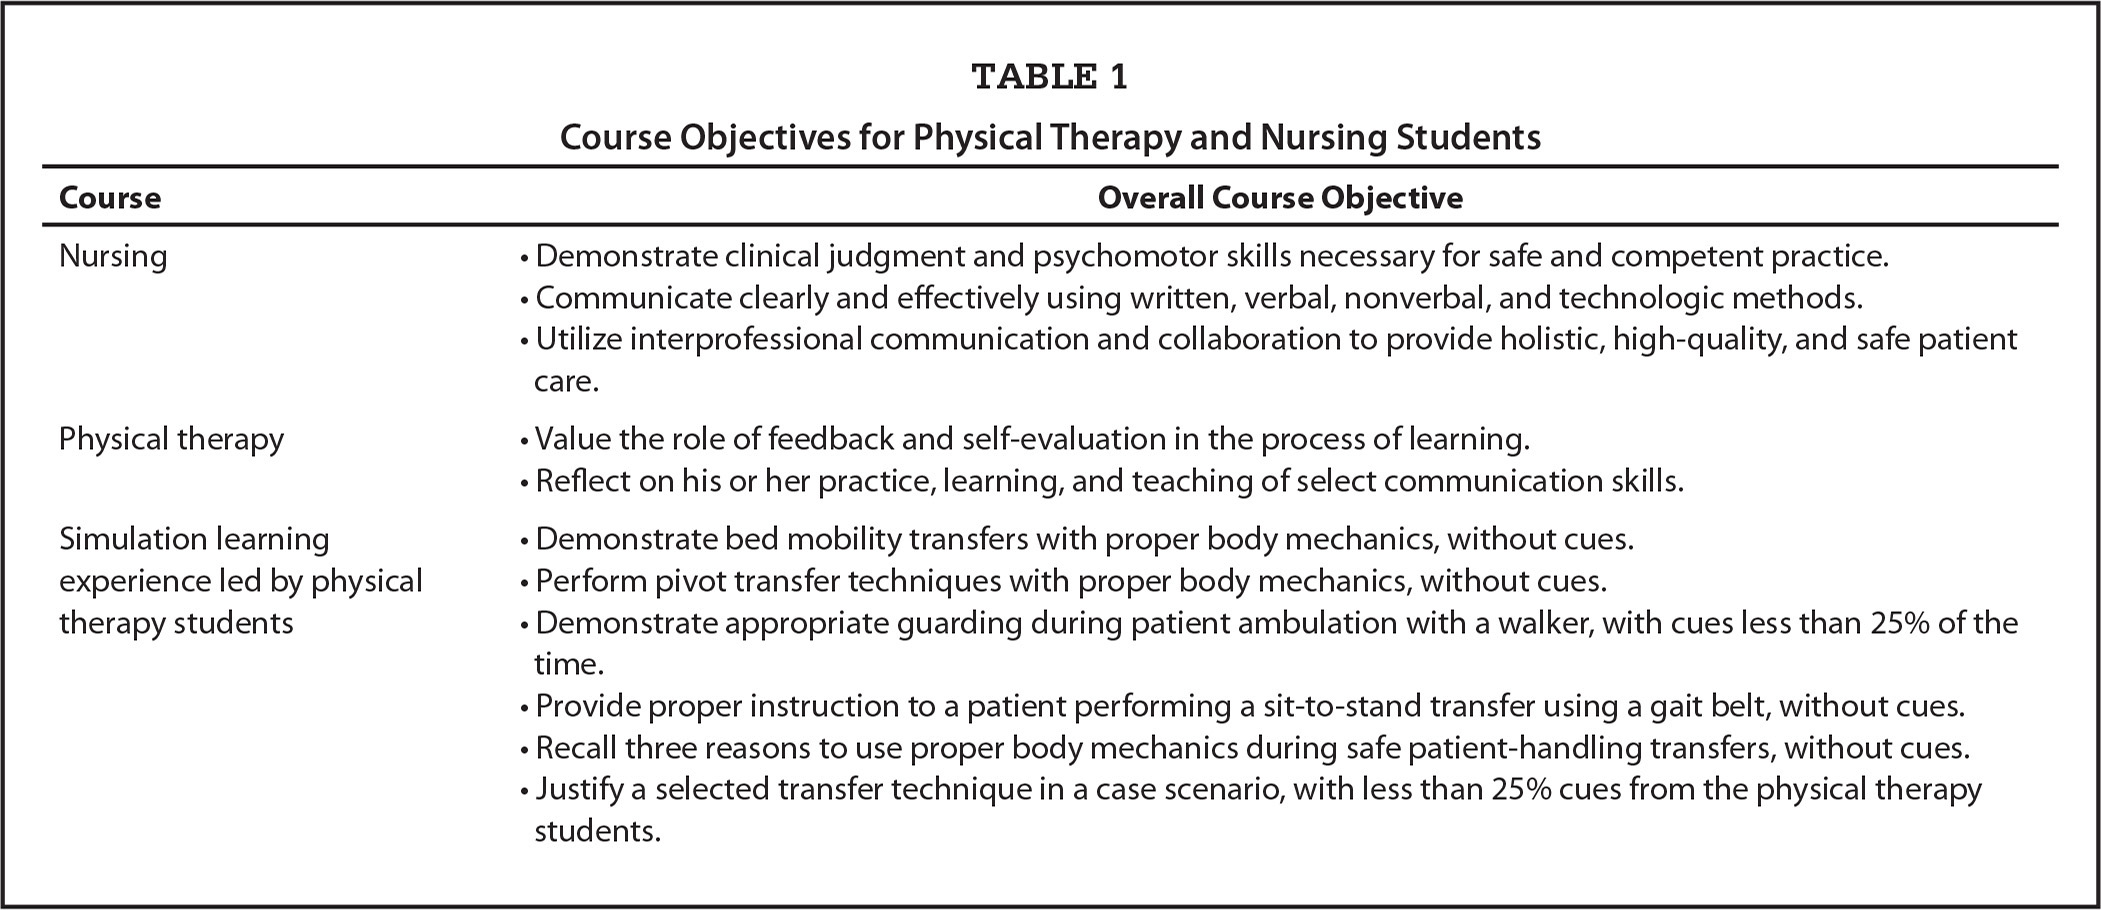 recovery is rediscovering purpose and meaning nursing essay A recurring feature in recovery narratives is the individual engaging or re-engaging in their life, on the basis of their own goals and strengths, and finding meaning and purpose through constructing or reclaiming a valued identity and social roles.